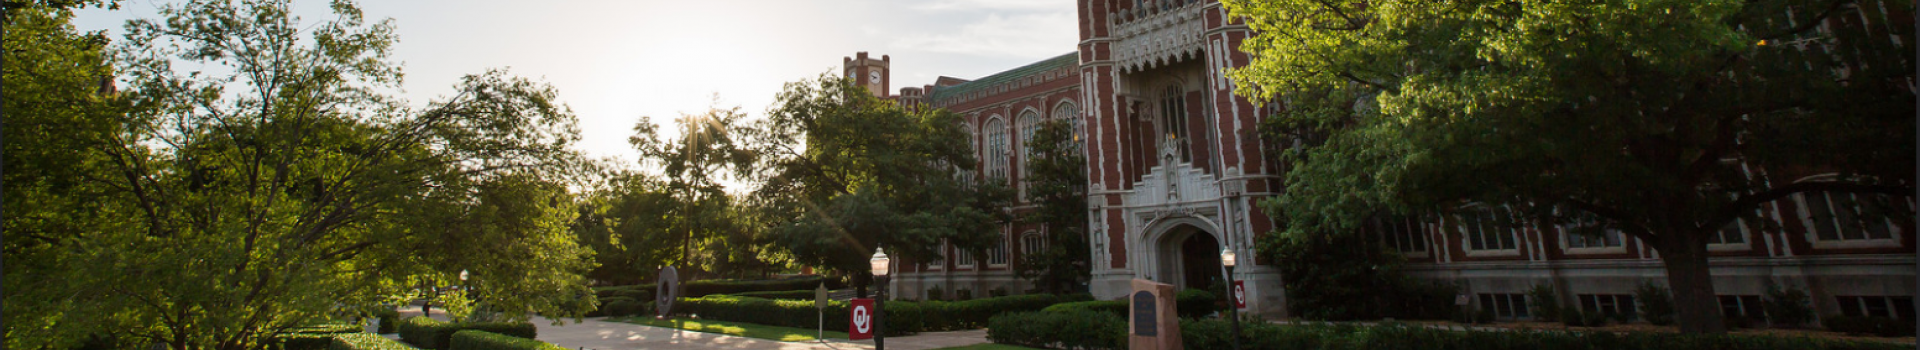 South entrance of the Bizzell Memorial Library.